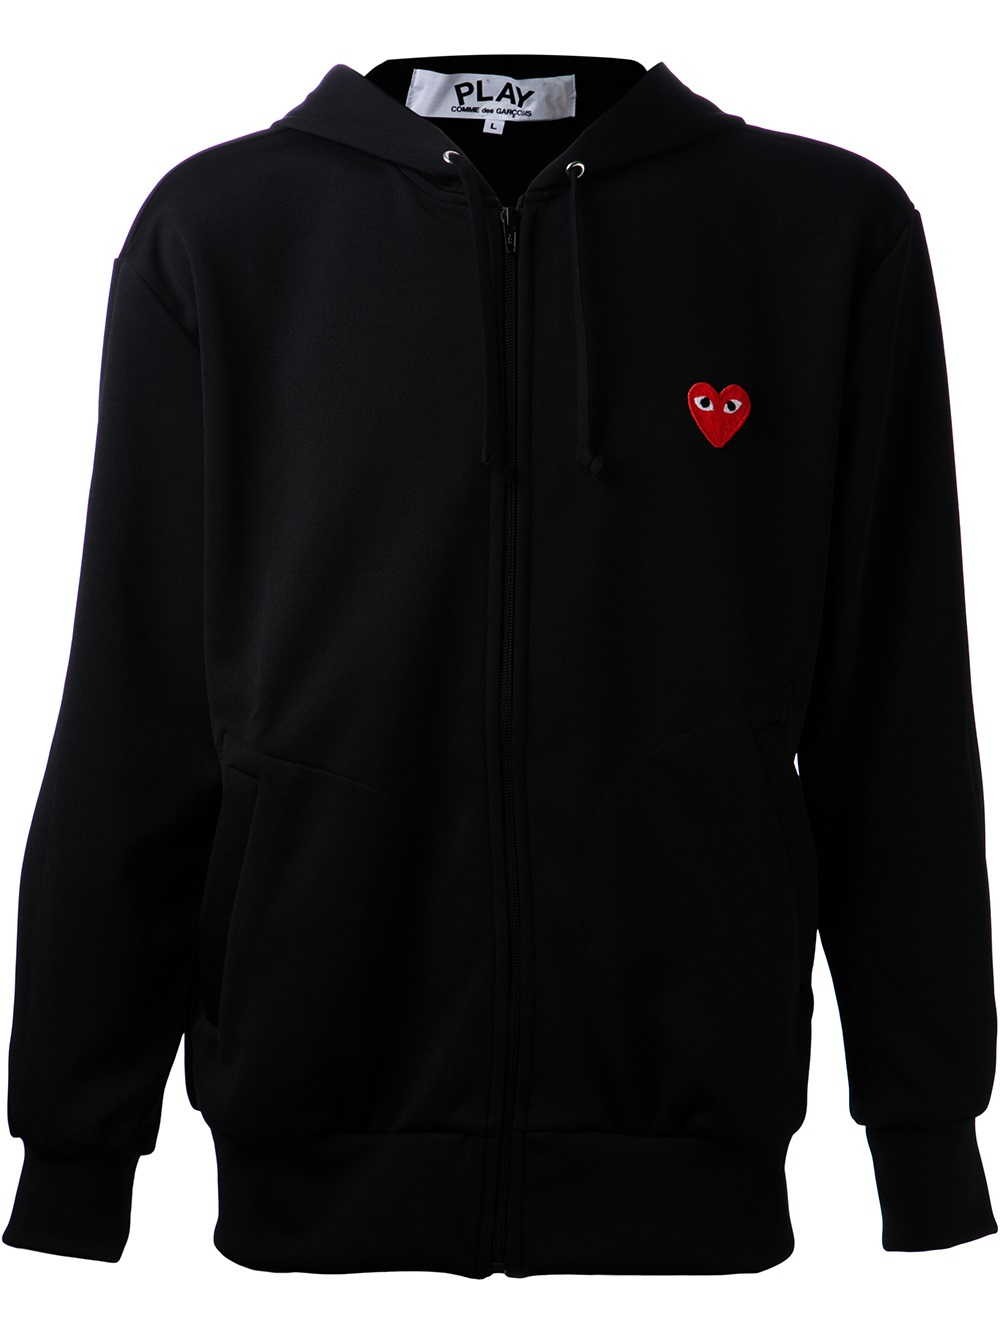 play comme des gar ons embroidered heart sweatshirt in. Black Bedroom Furniture Sets. Home Design Ideas